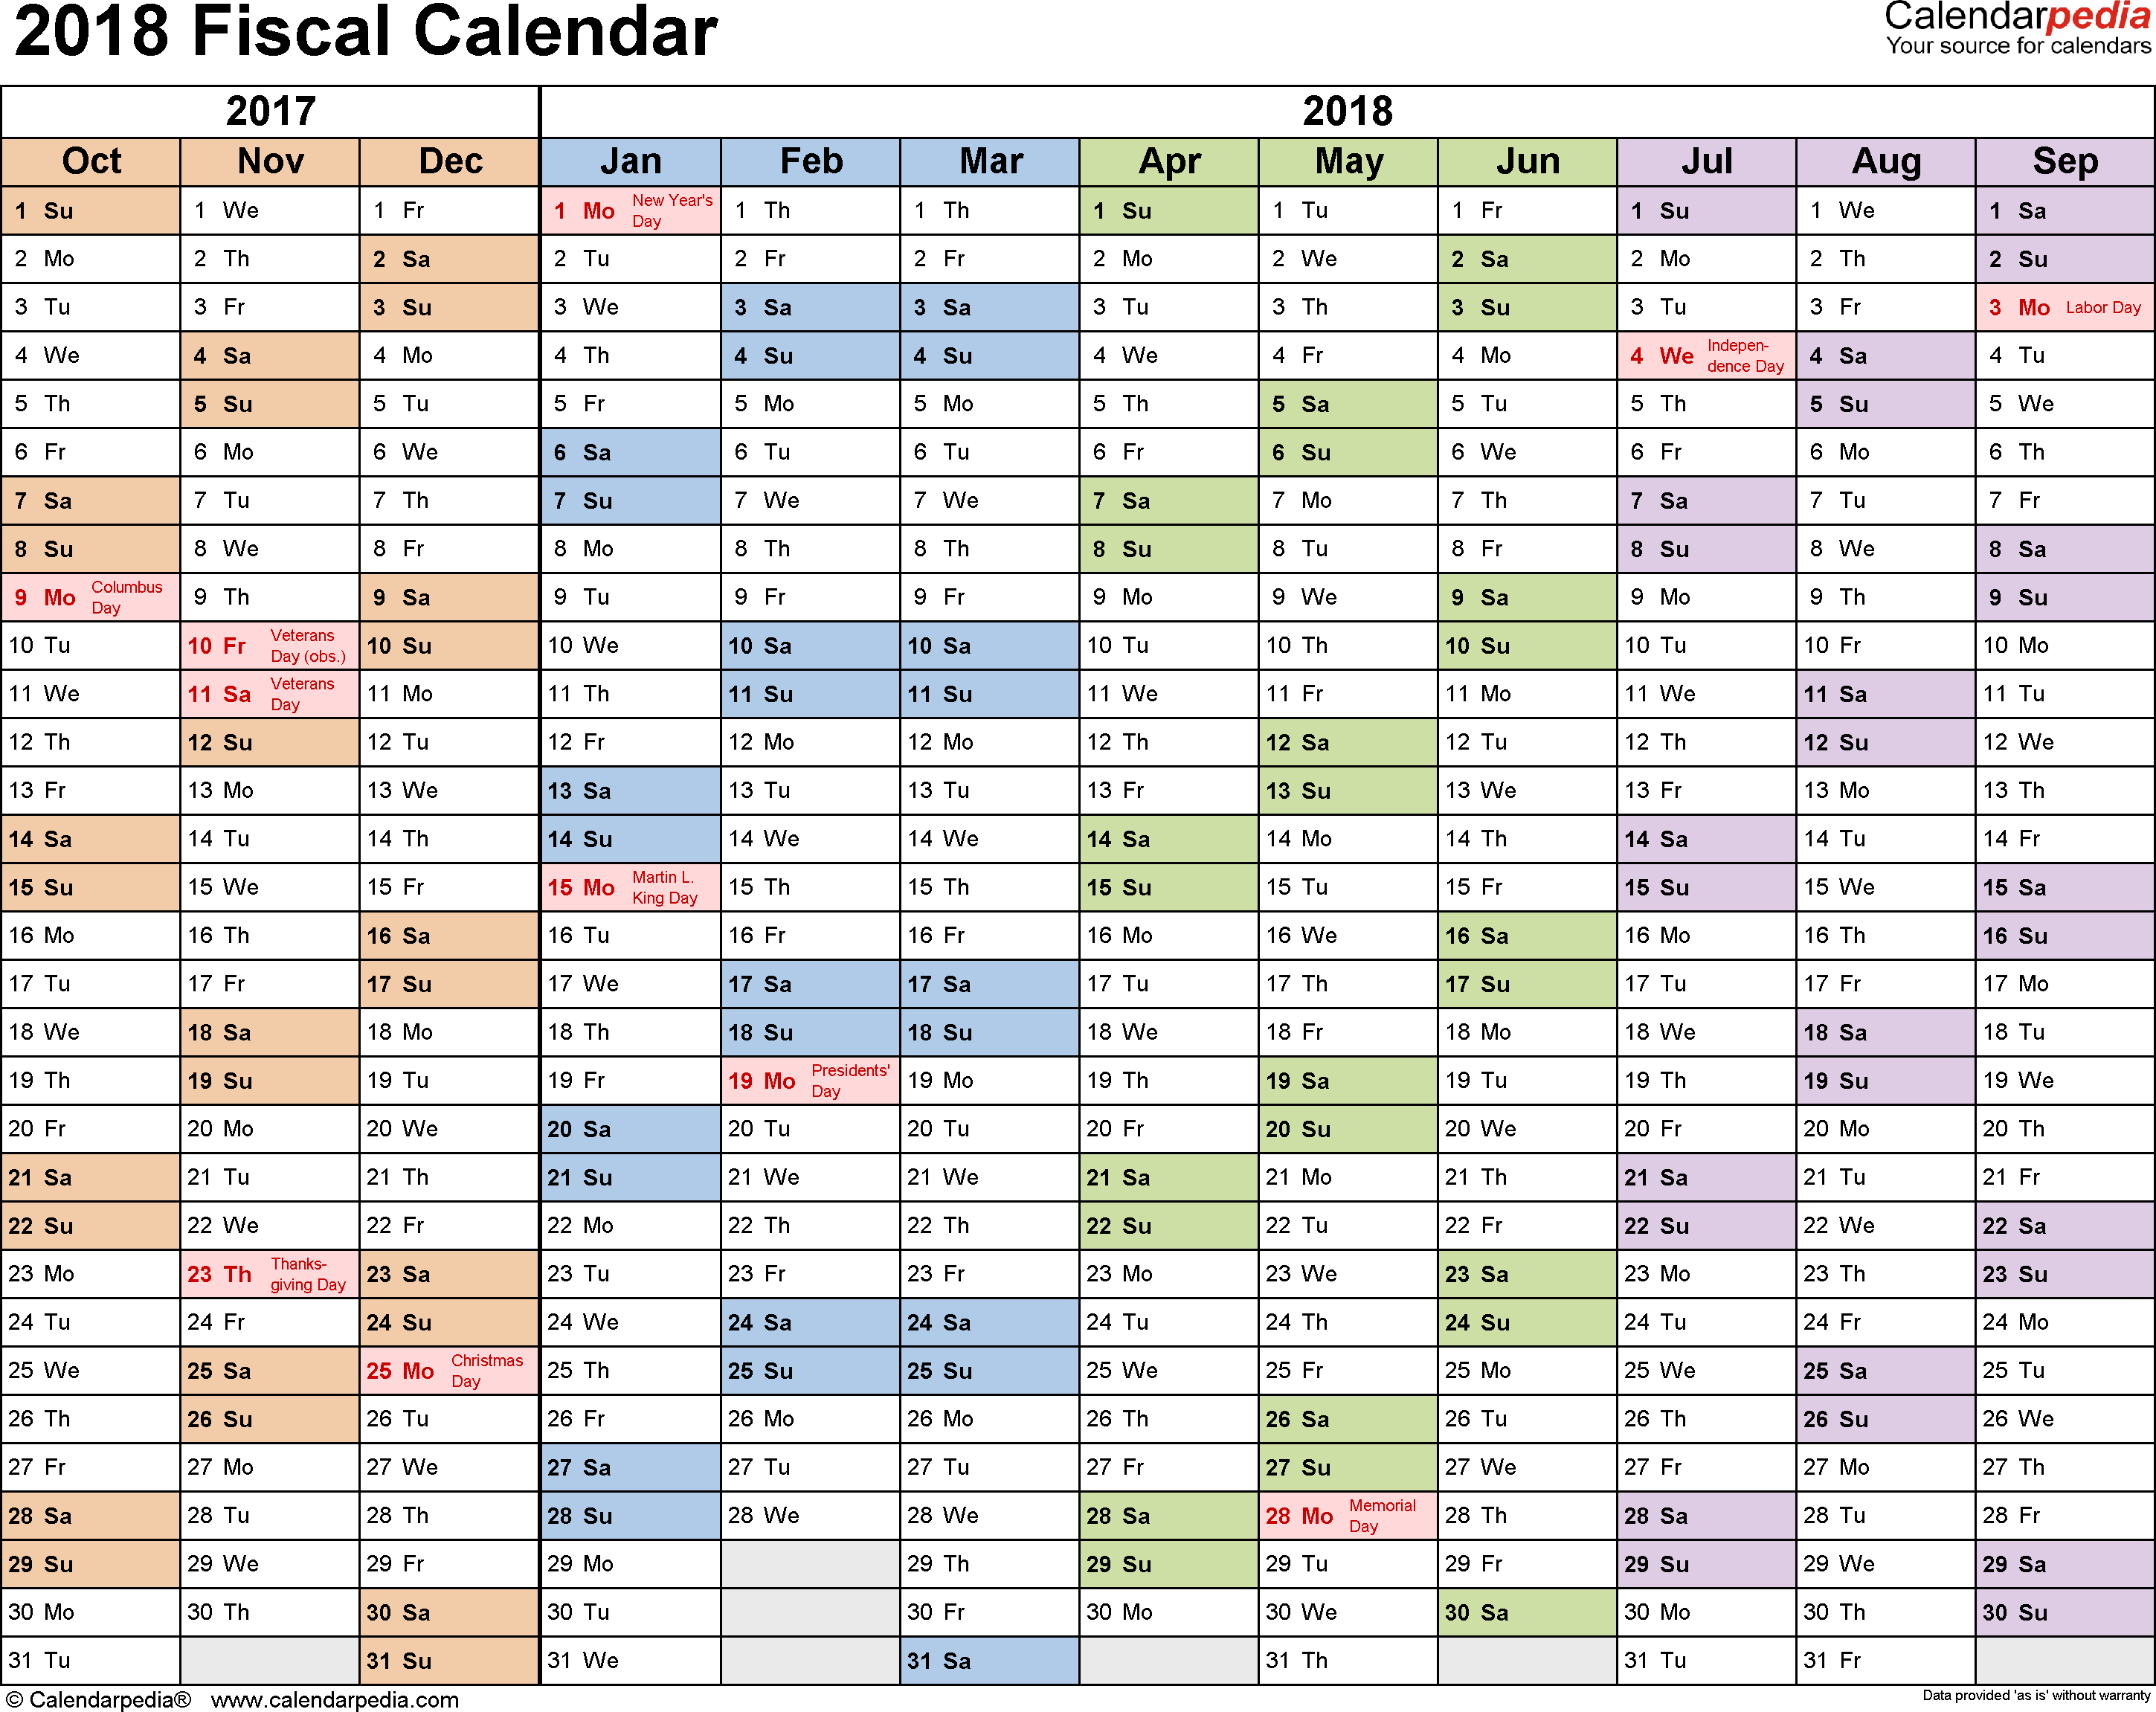 template 1 fiscal year calendar 2018 for pdf landscape orientation months horizontally